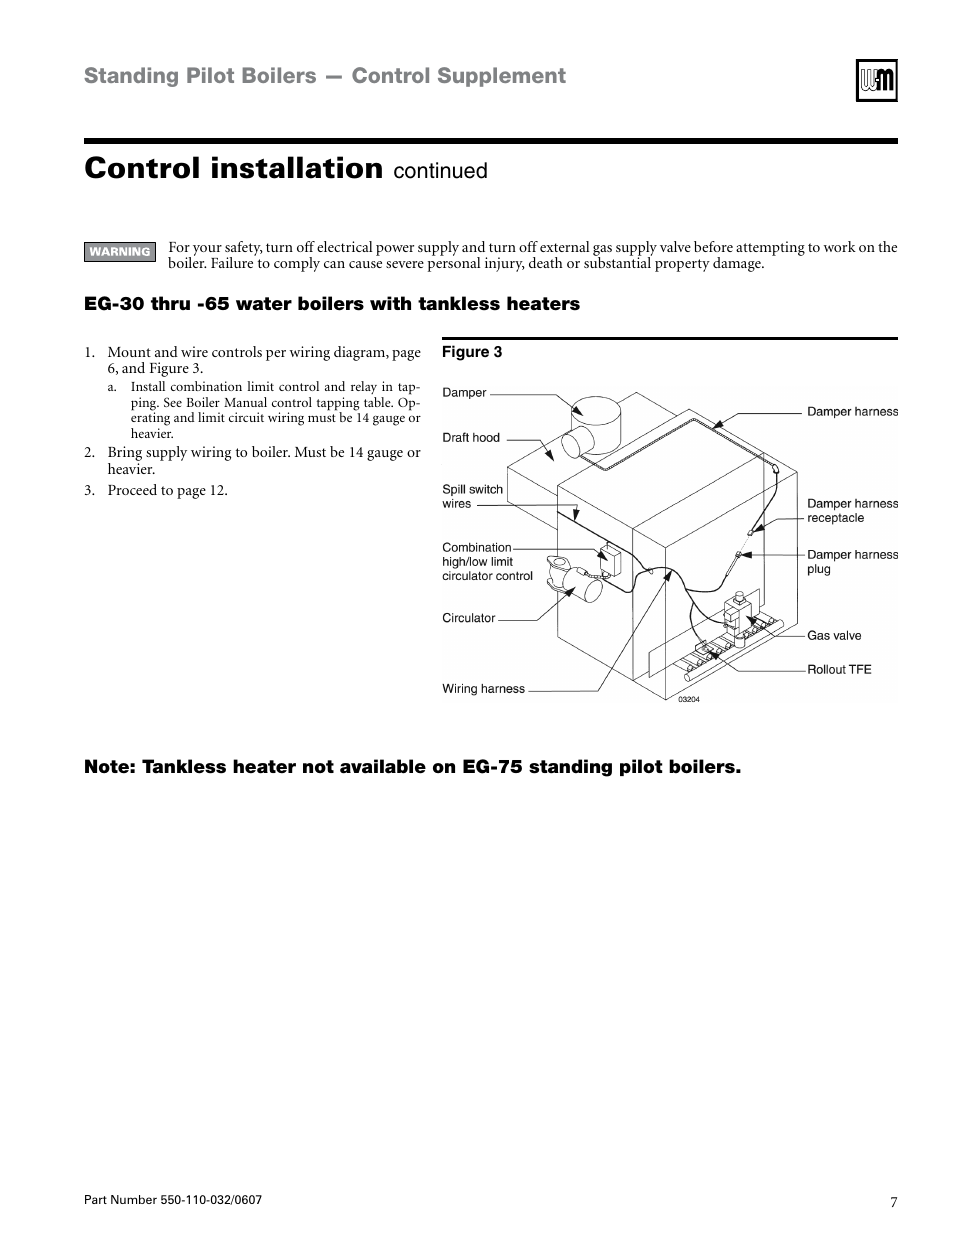 Eg6 Climate Control Wiring Diagram Trusted Boiler Controls Diagrams Installation Standing Pilot Boilers Supplement Simple Motor